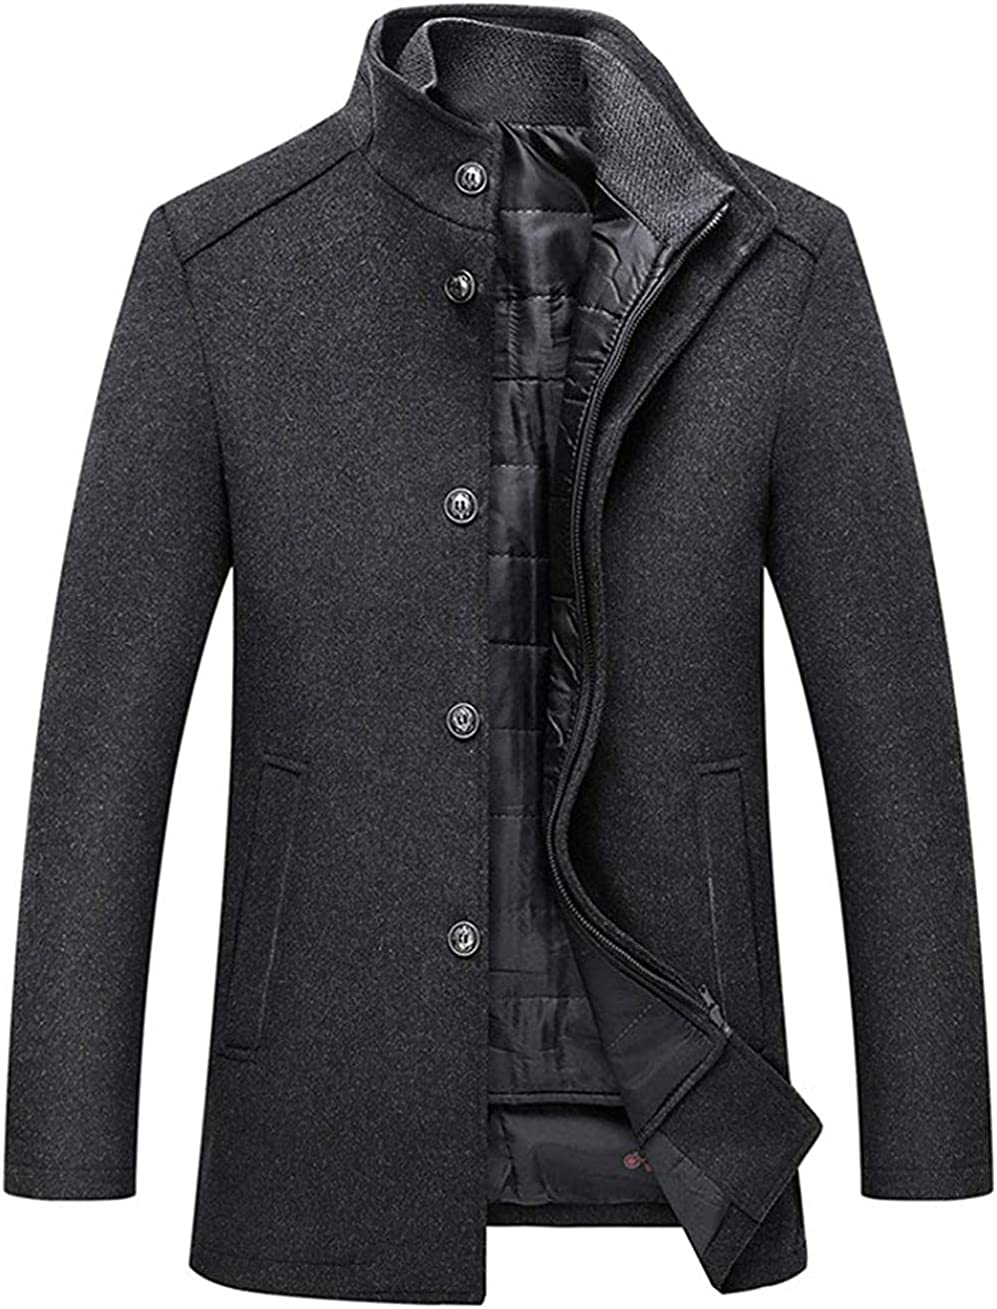 Men's Stand Collar Wool Blend Top Coat with Removable Quilted Bib Vest